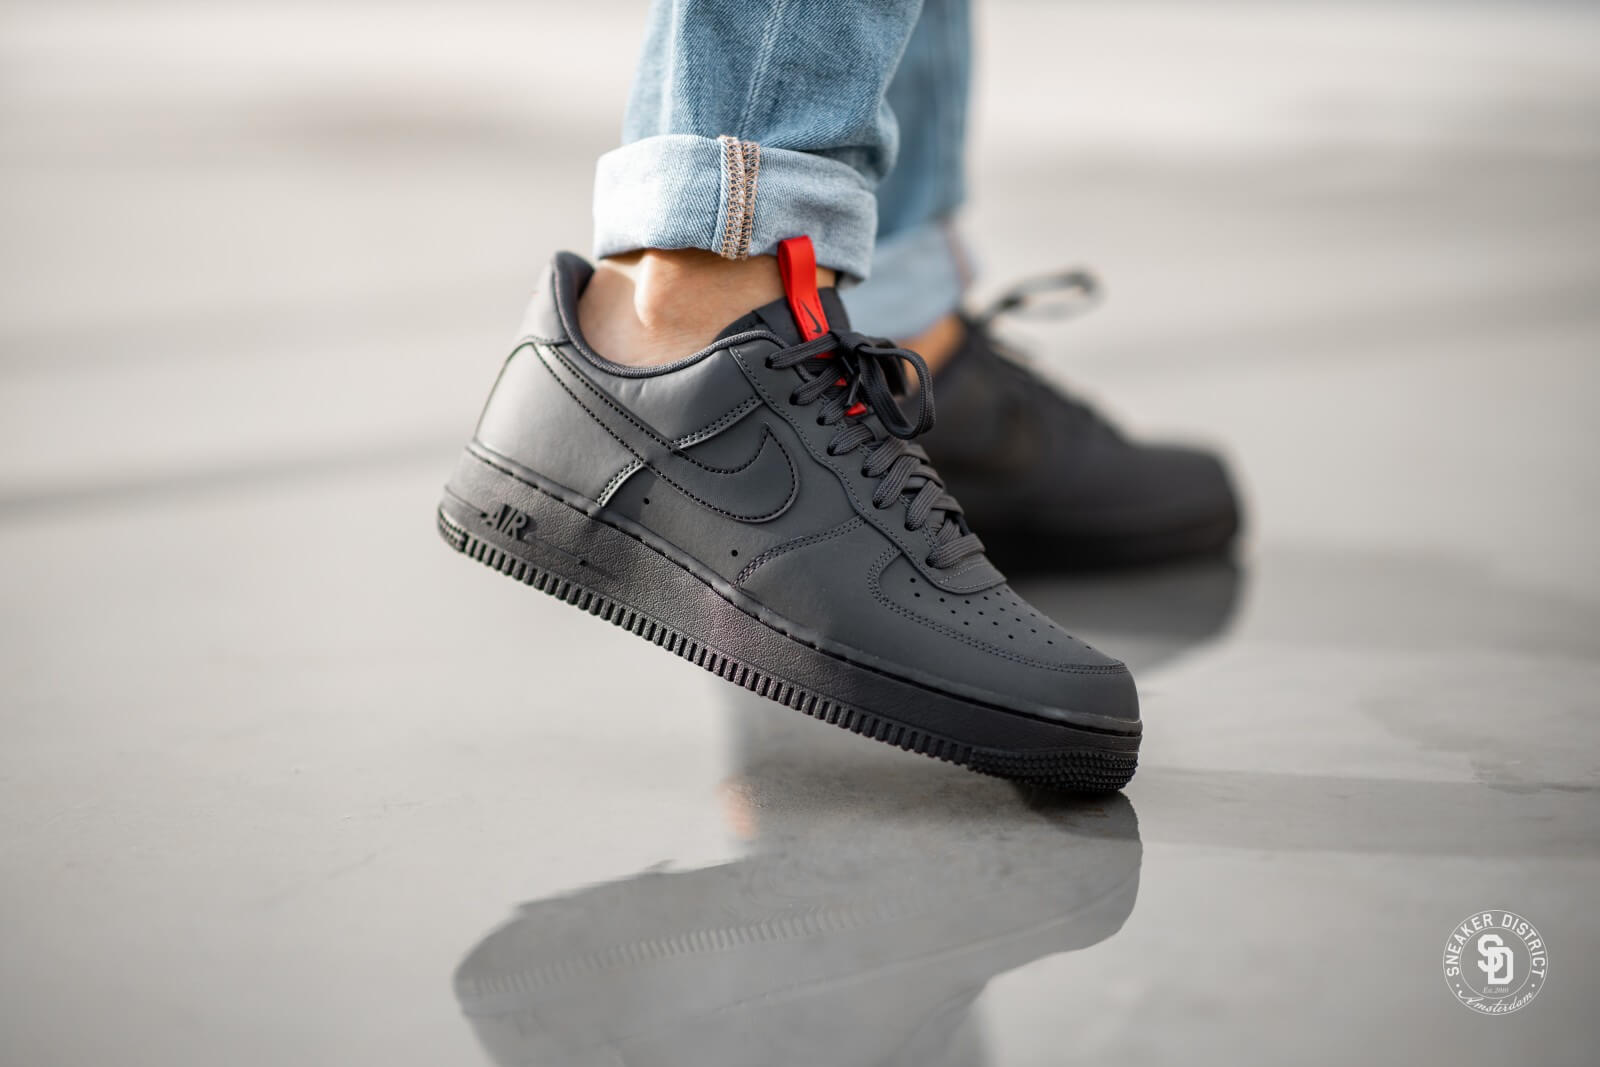 Nike Air Force 1 '07 BlackMica Green Ridgerock Men's Shoe